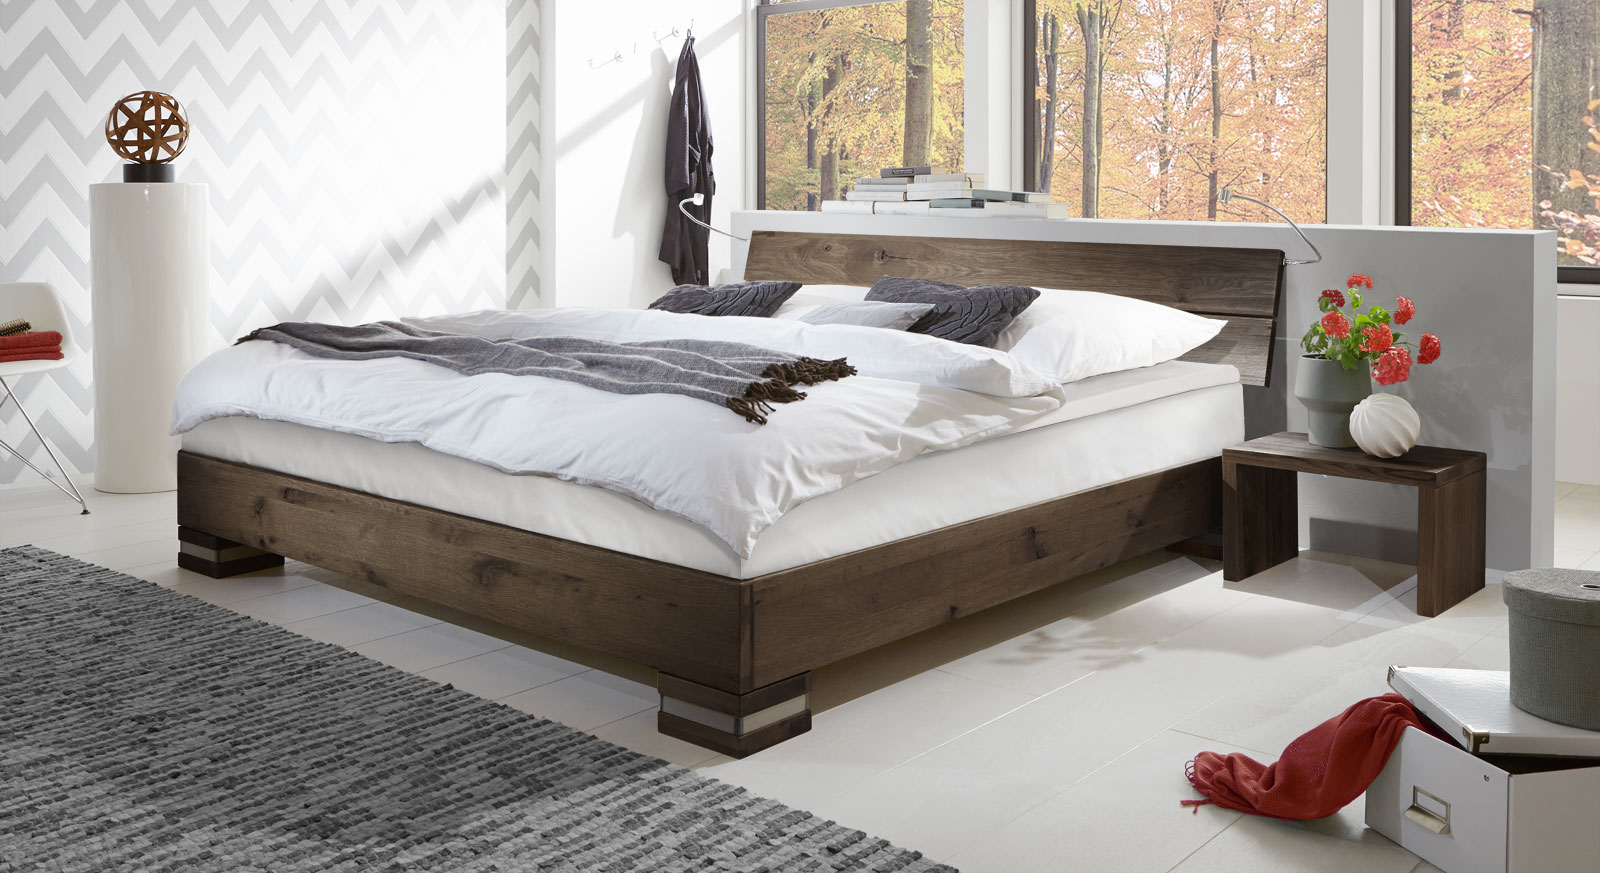 Boxspringbett Holz Mexiana in coffee Farbe